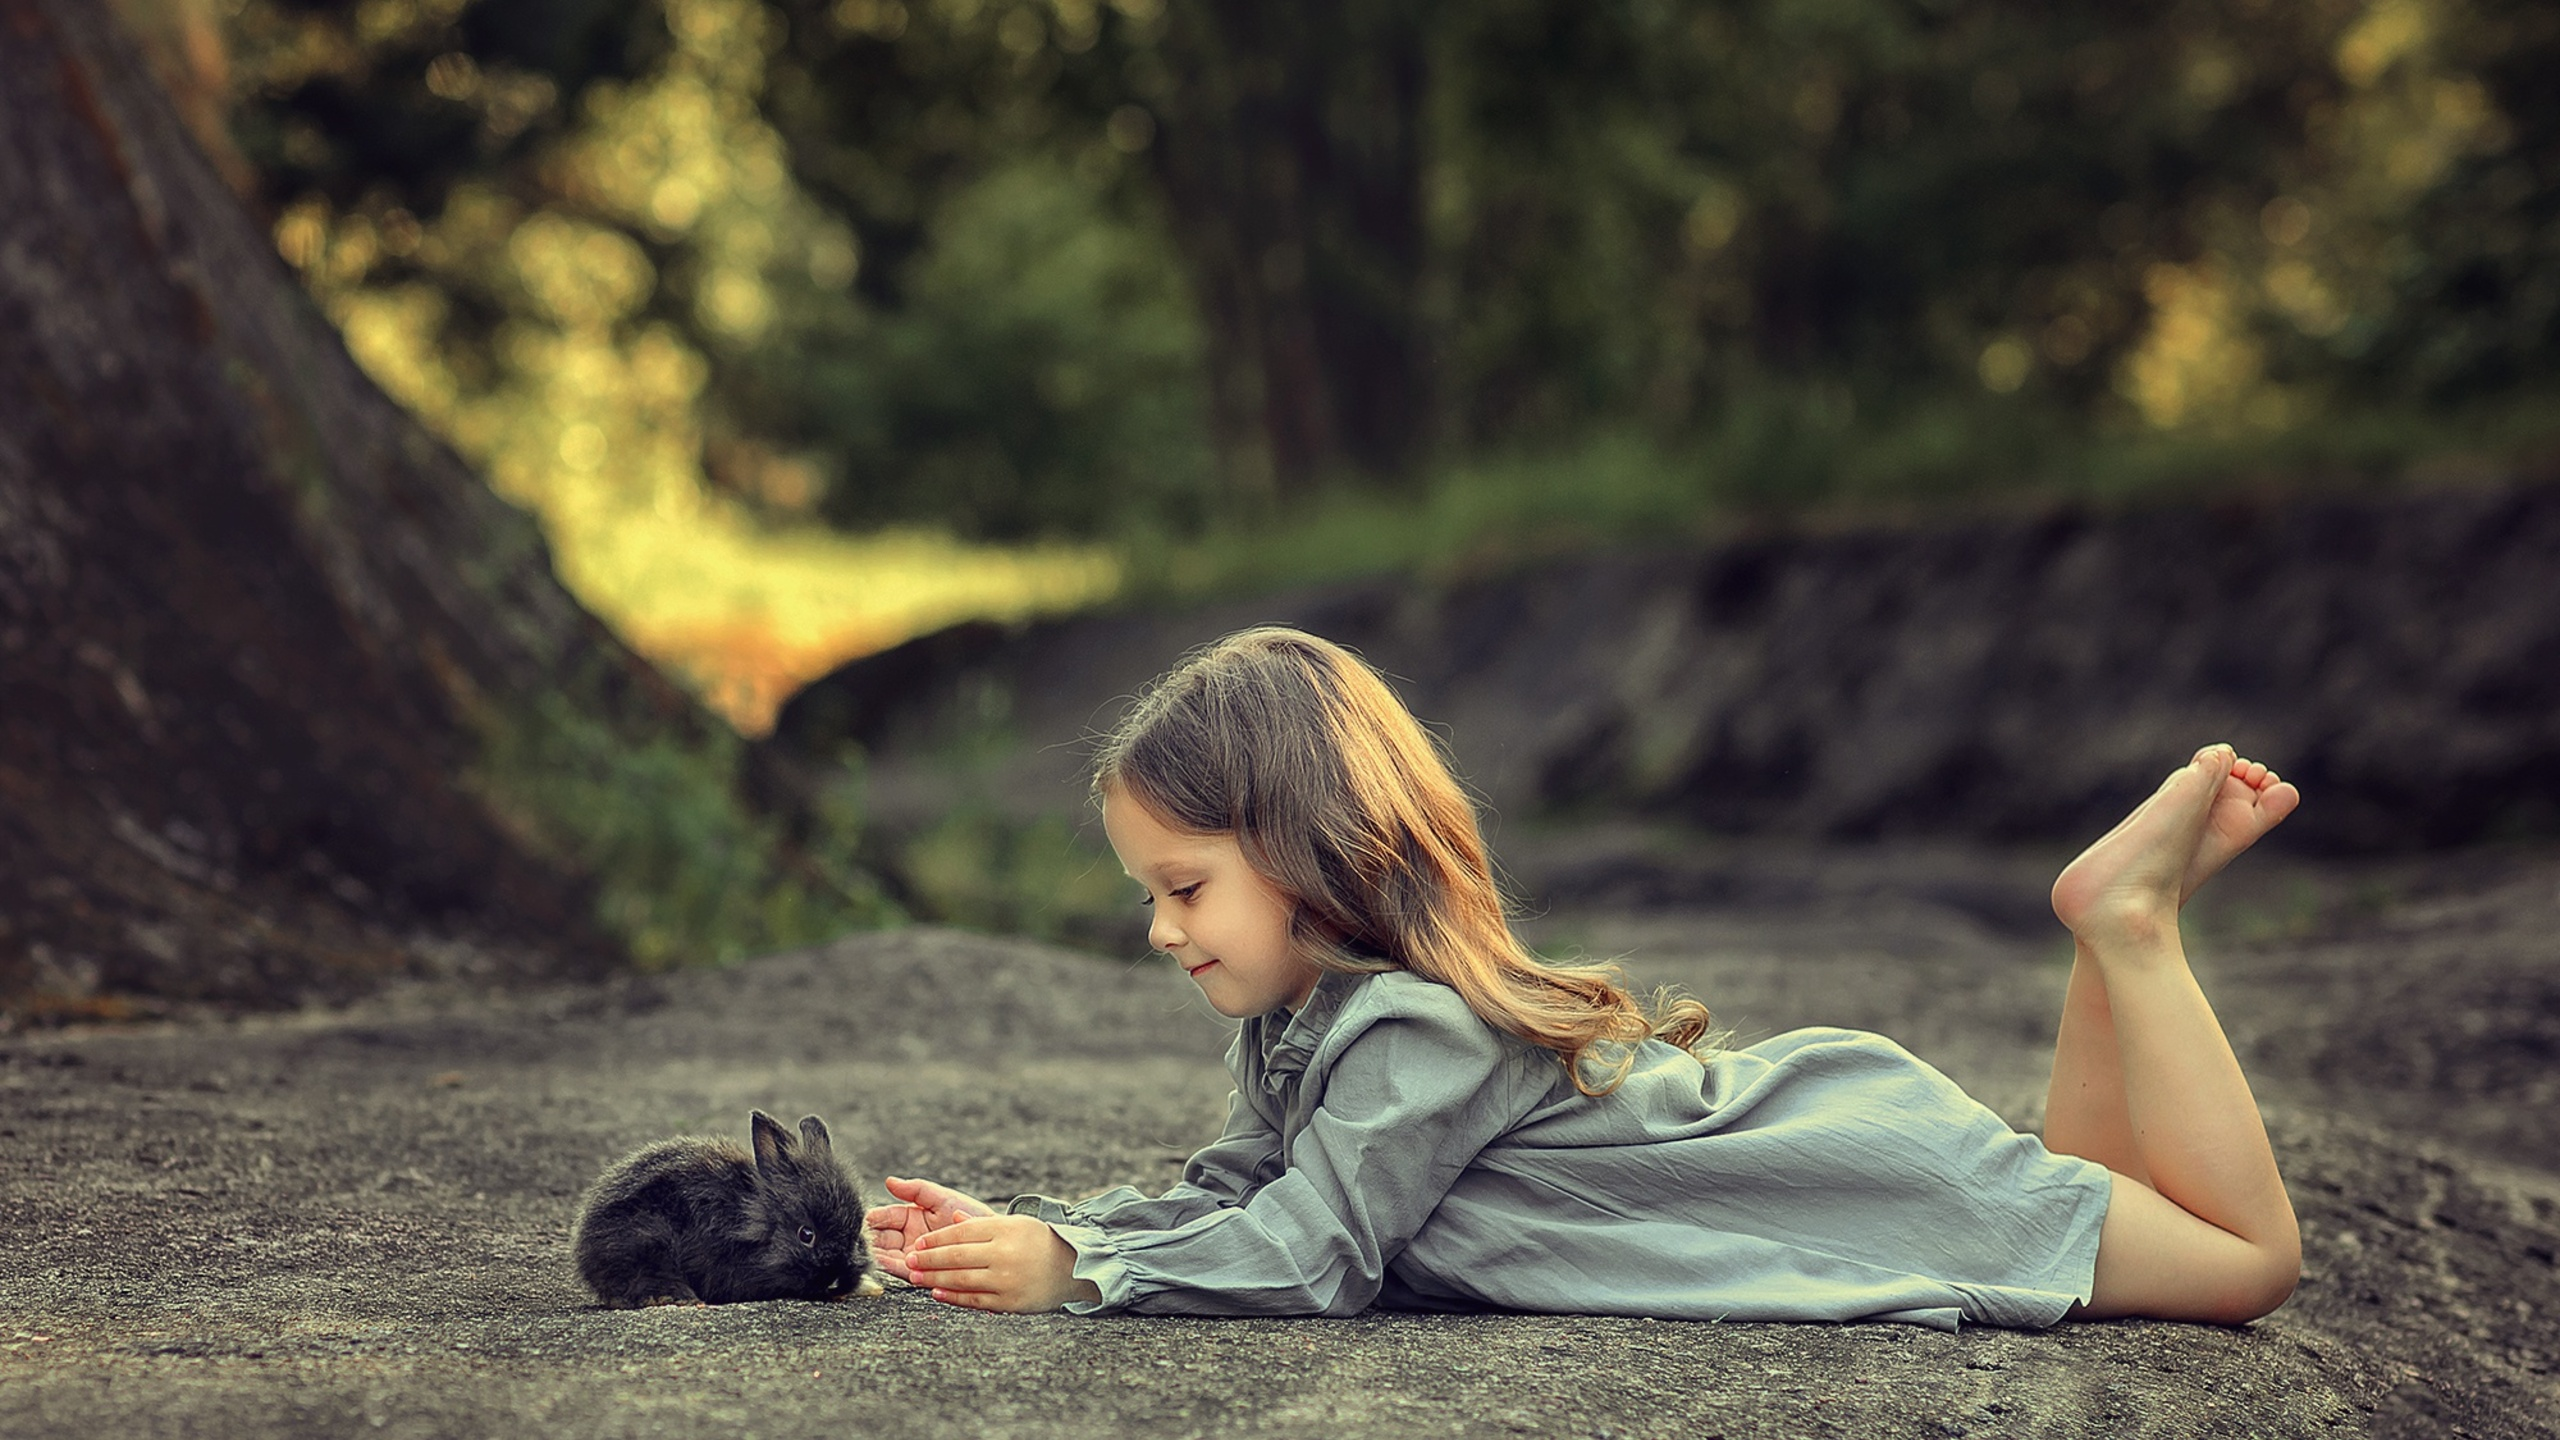 little-girl-lying-down-and-playing-with-rabbit-ez.jpg